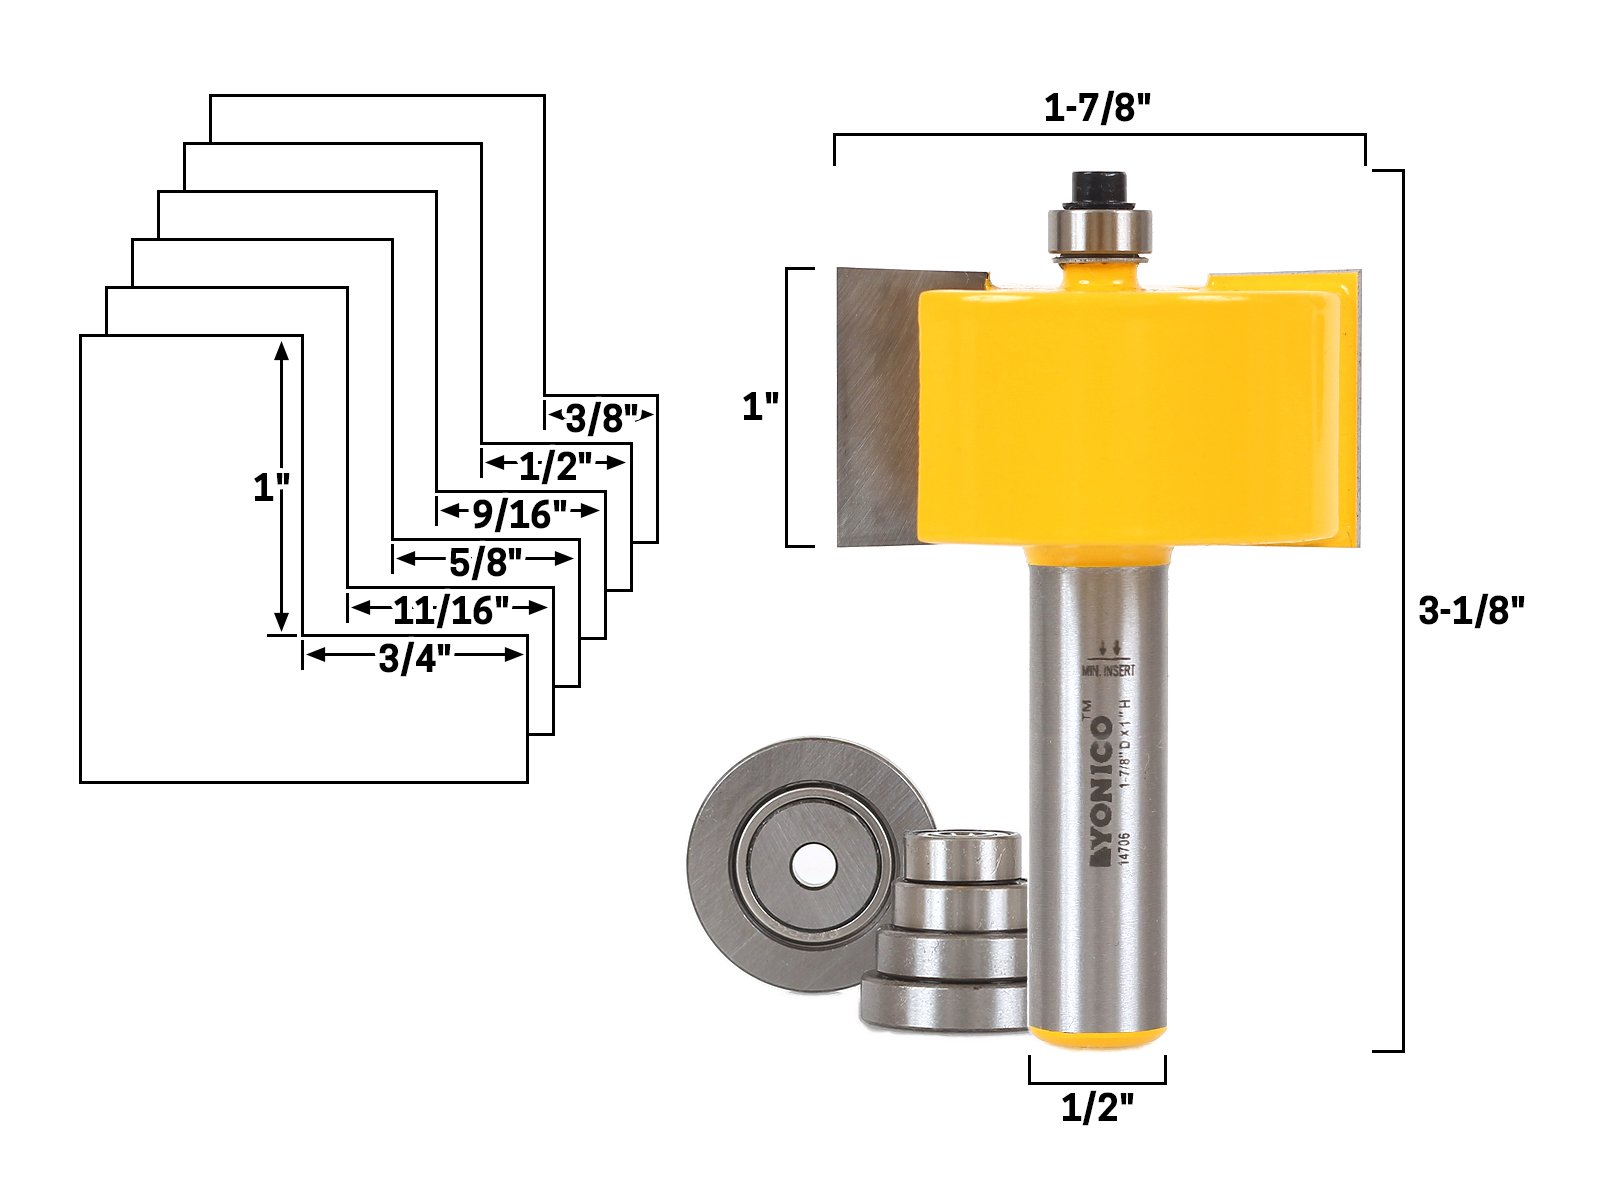 Yonico 14706 Large Rabbet Router Bit & Bearing Set 1/2-Inch Shank by Yonico